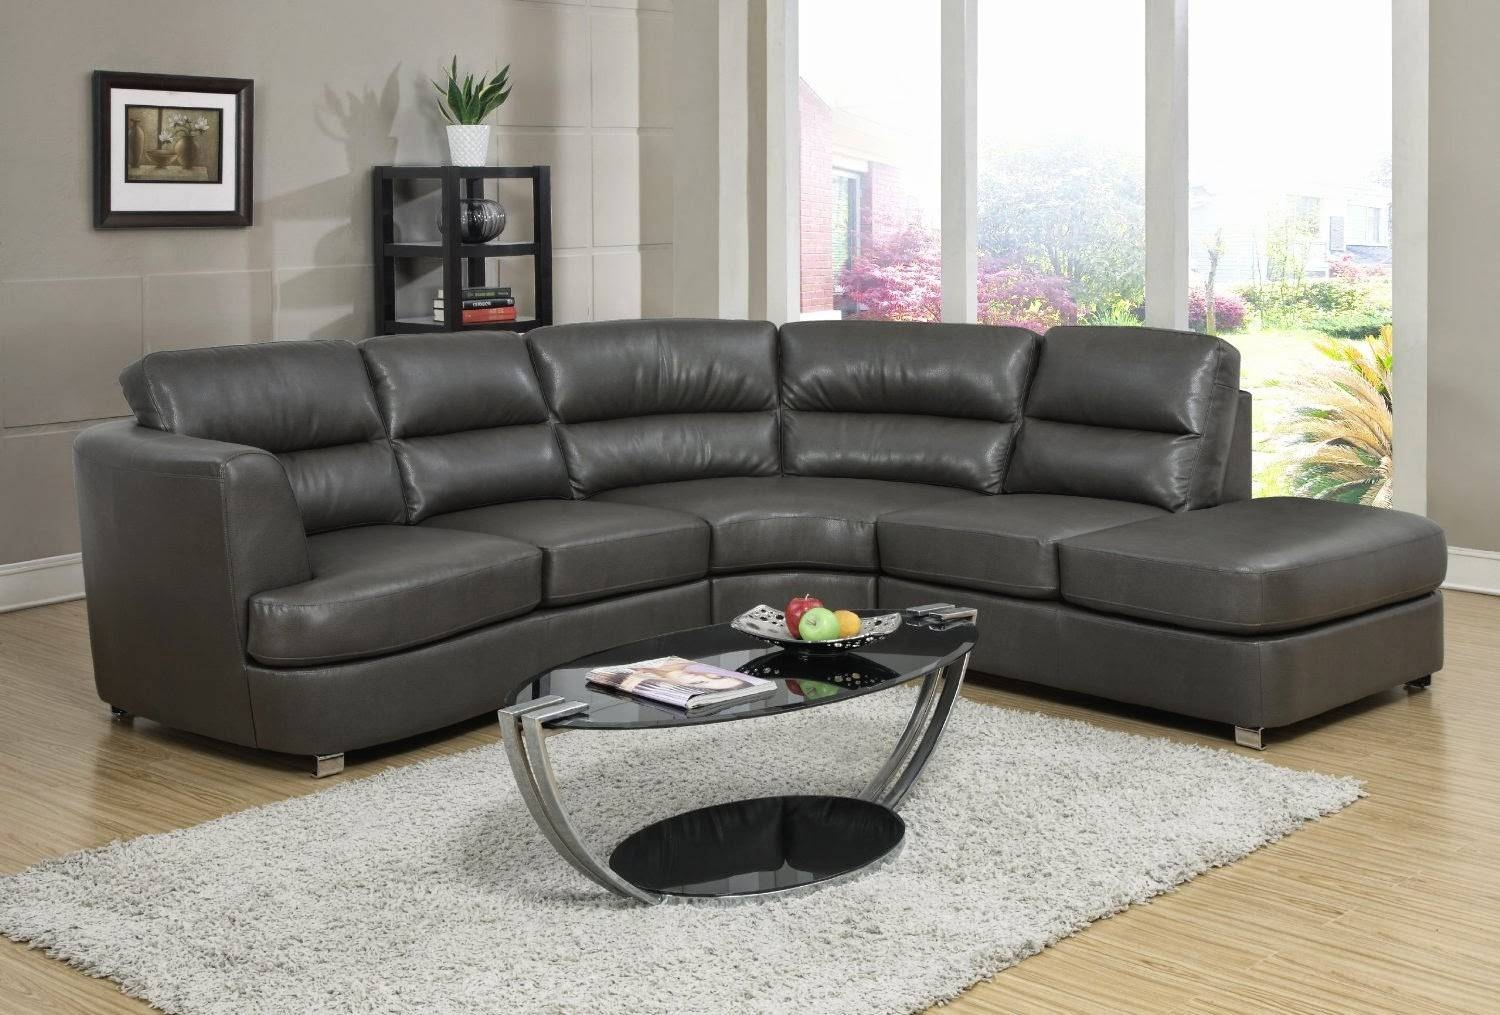 Gray Couch: Gray Leather Couch with regard to Charcoal Grey Leather Sofas (Image 9 of 15)